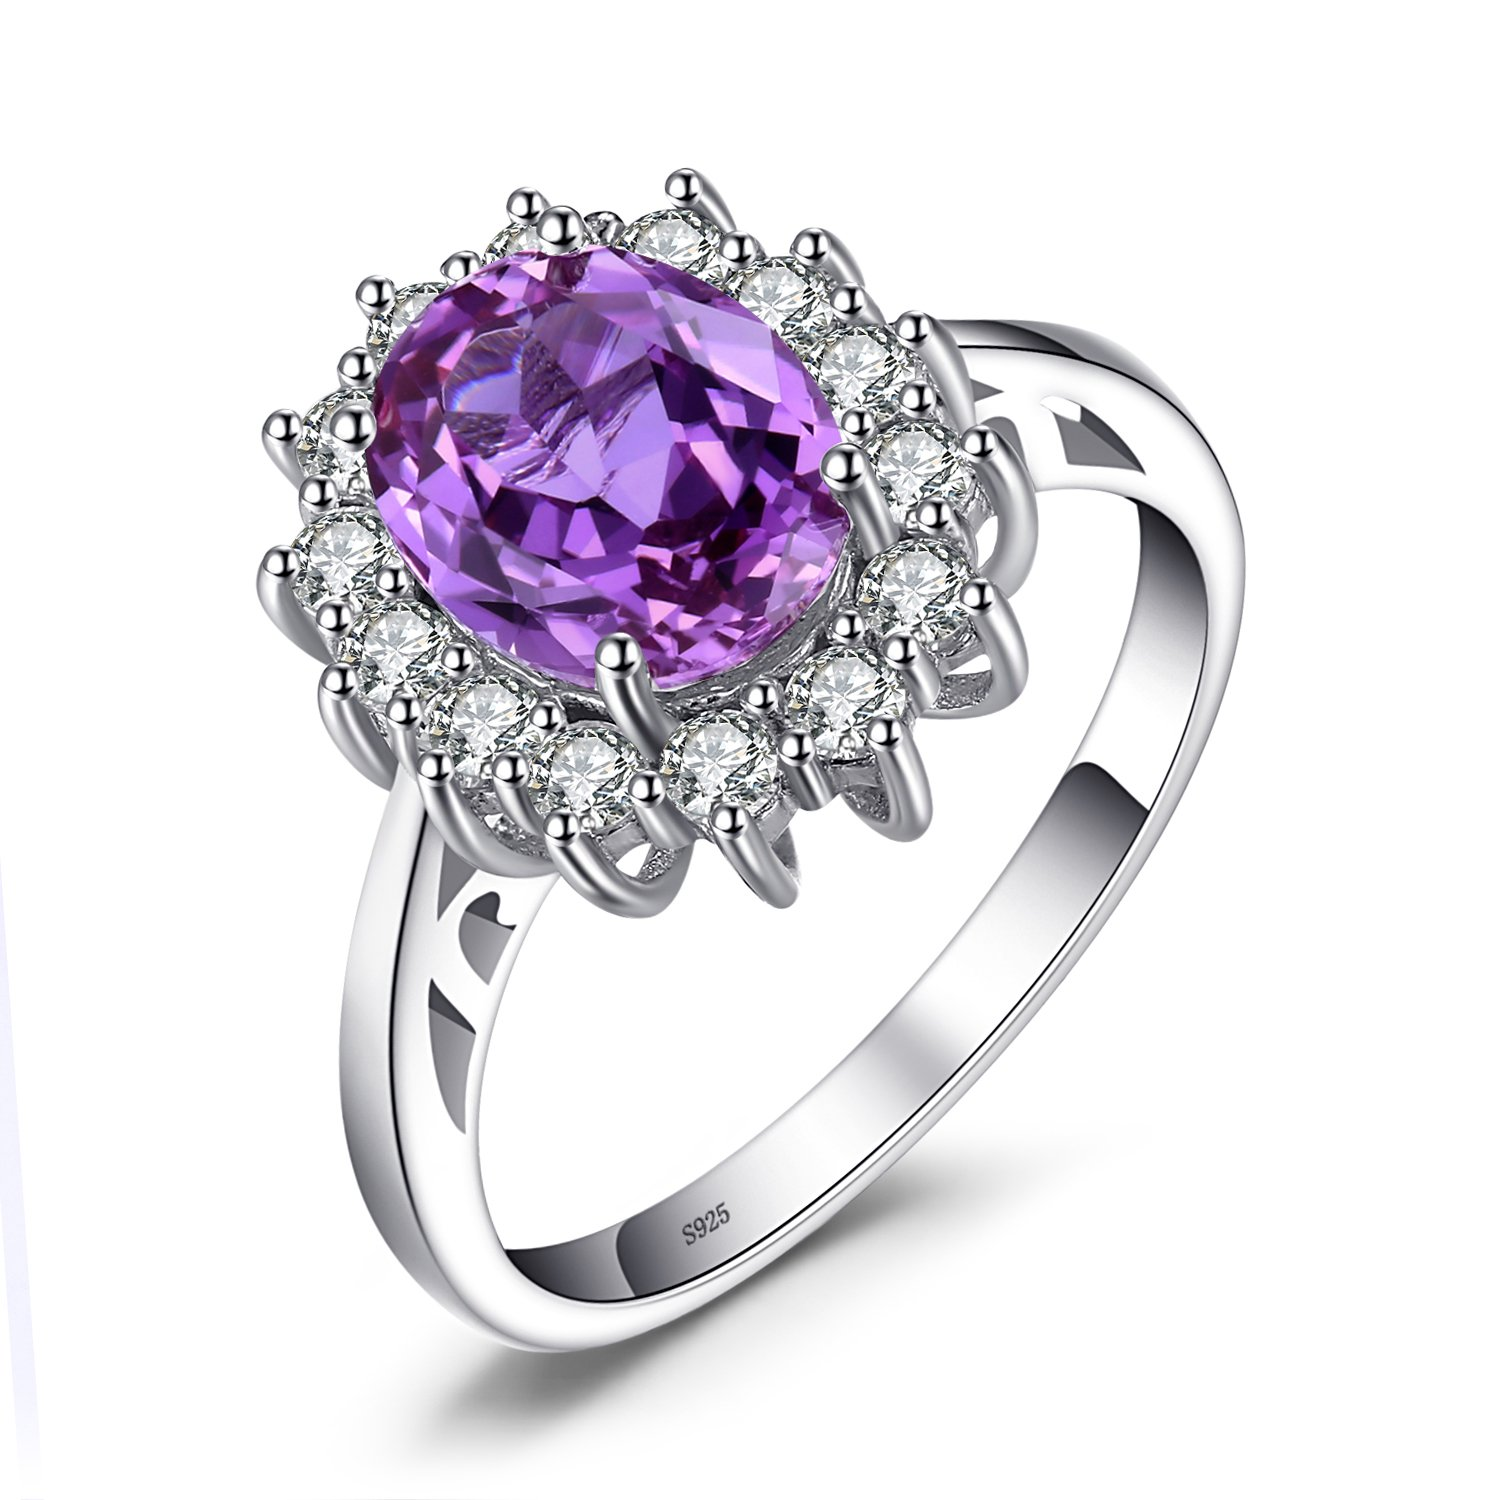 JewelryPalace Princess Diana William Kate Middleton's 3.2ct Created Alexandrite Sapphire Ring 929 Sterling Silver Size 9